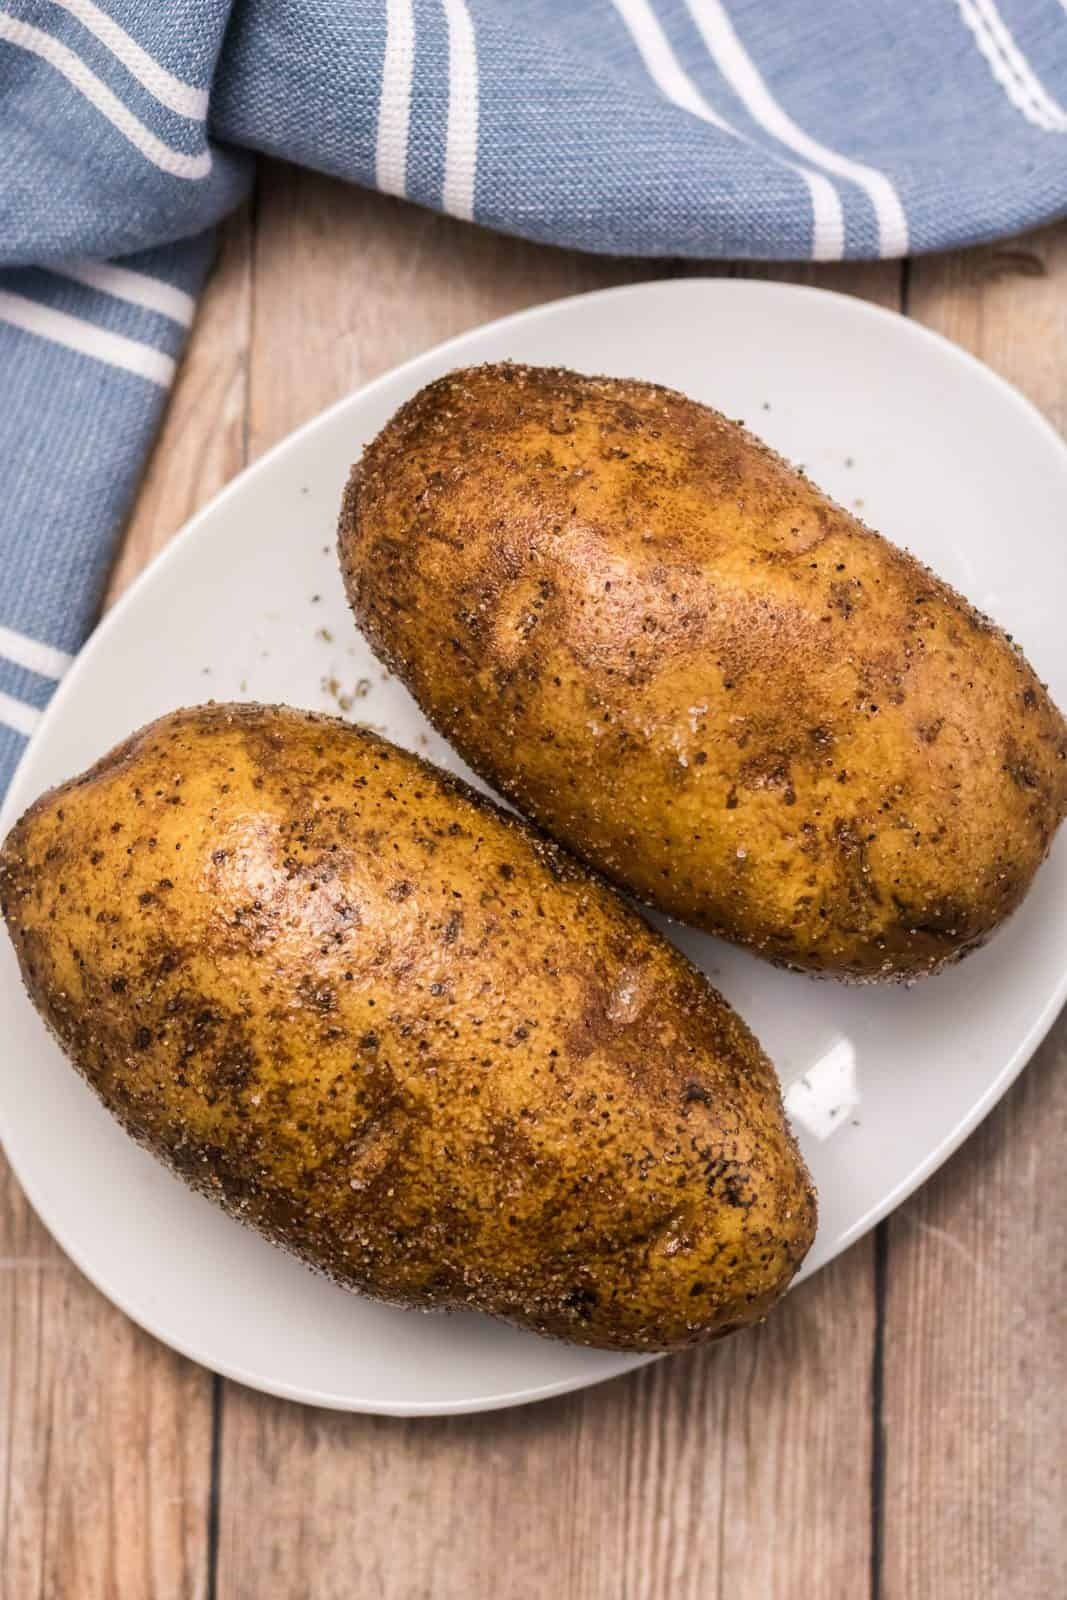 Two potatoes rubbed with oil, salt and pepper.